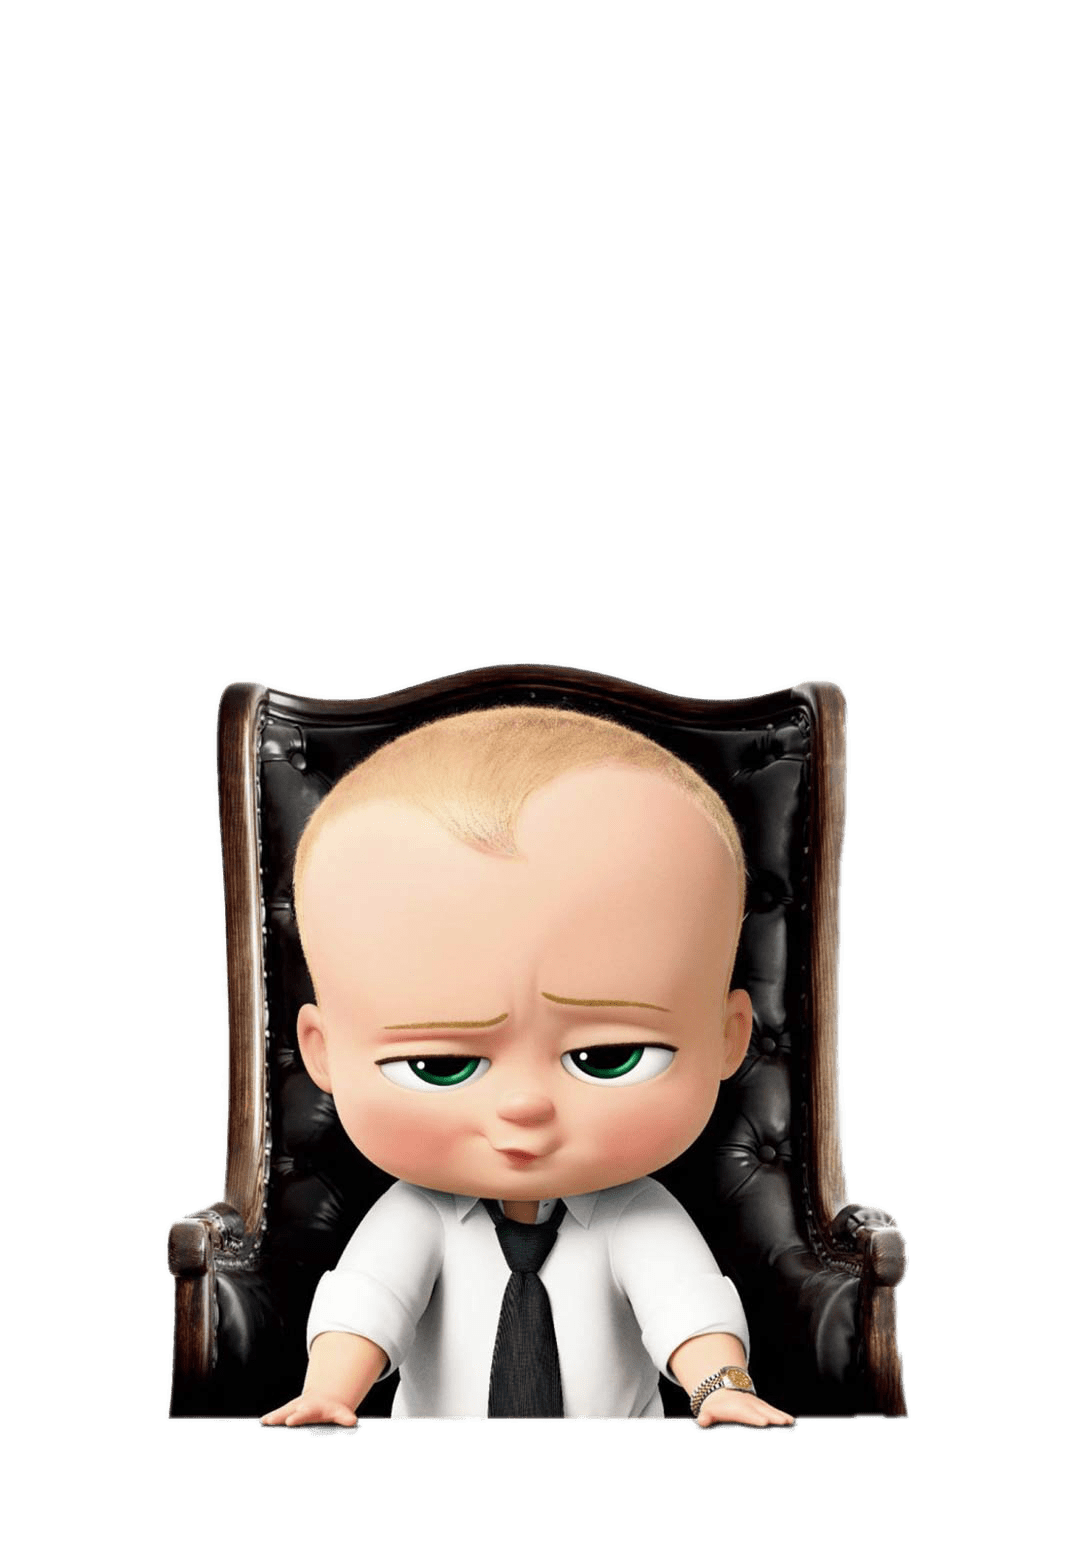 Pin By Carmen Escalante On Boss Baby The Baby Boss Boss Baby Baby Products 2017 Baby Images